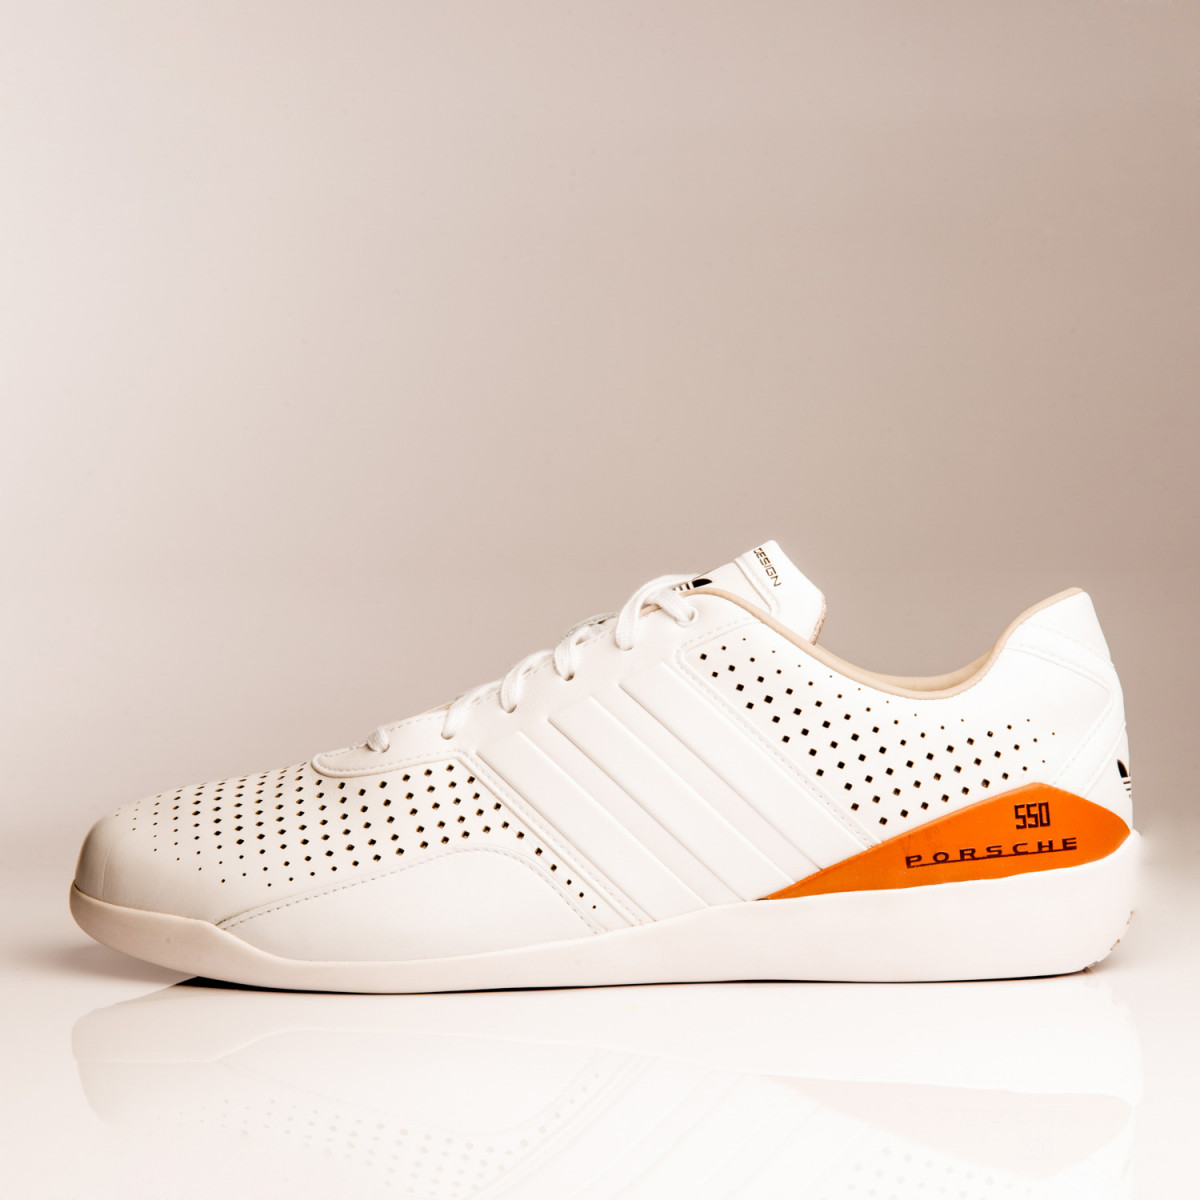 ZAPATILLAS ADIDAS ORIGINALS PORSCHE 550 SPORT RUN